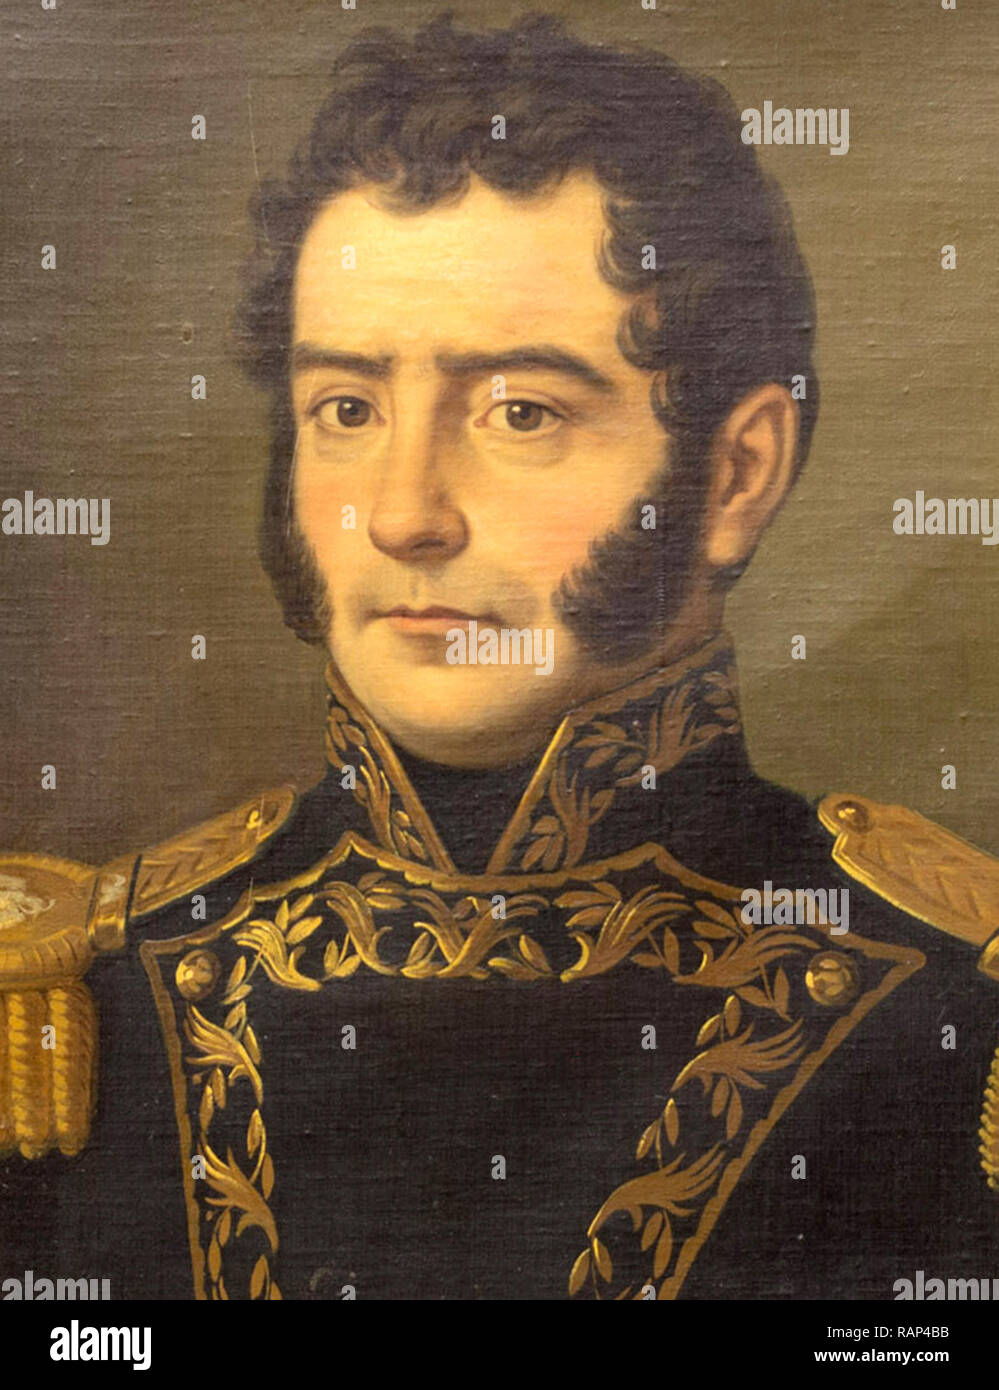 Melchor de Eca y Múzquiz (1790 – 1844)  5th president of Mexico. - Stock Image